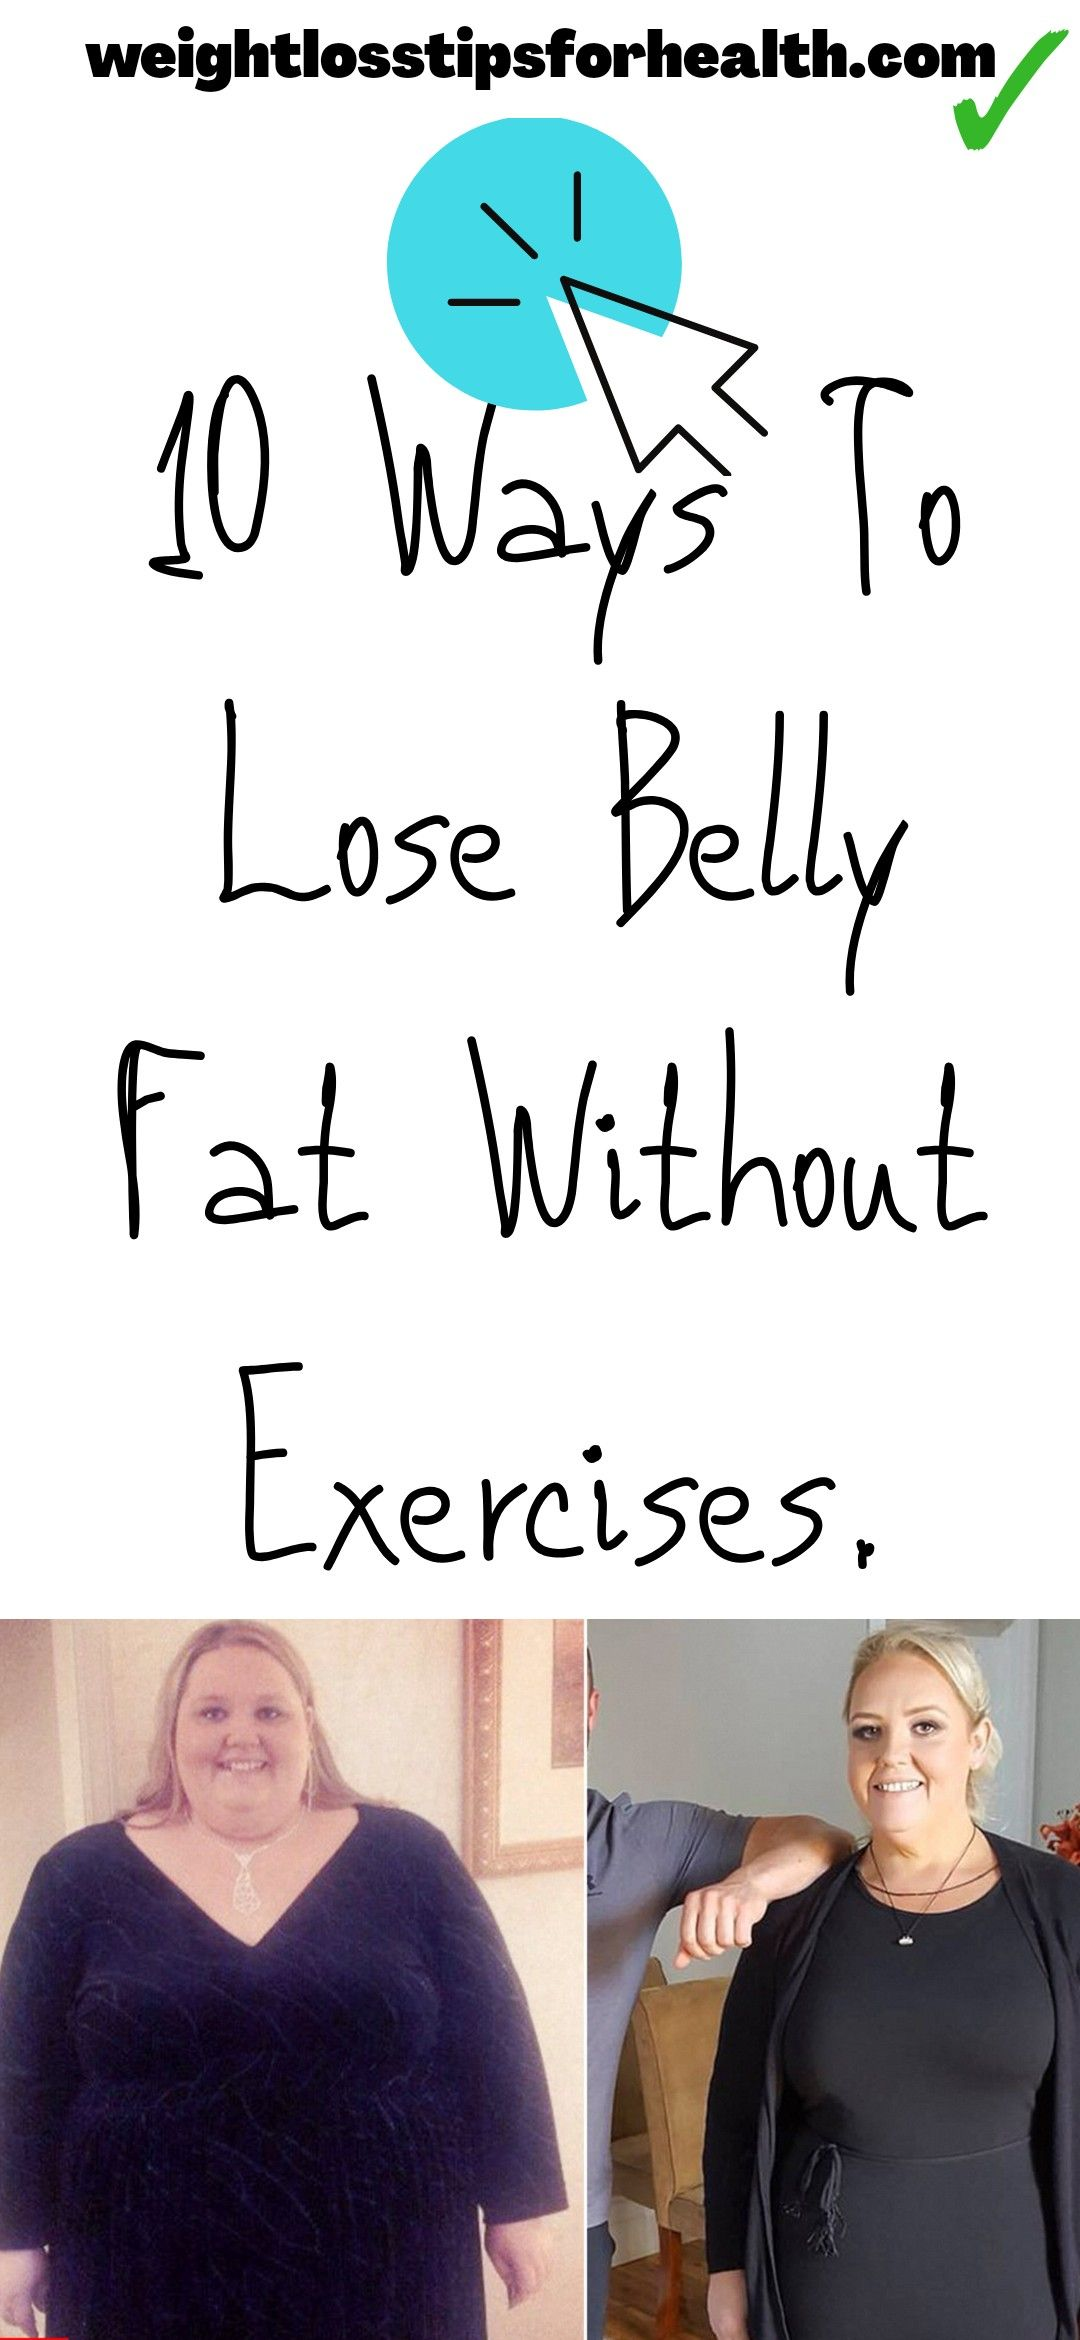 10 Ways to lose belly fat without Exercises | lose belly fat fast and easy | how to lose belly fat